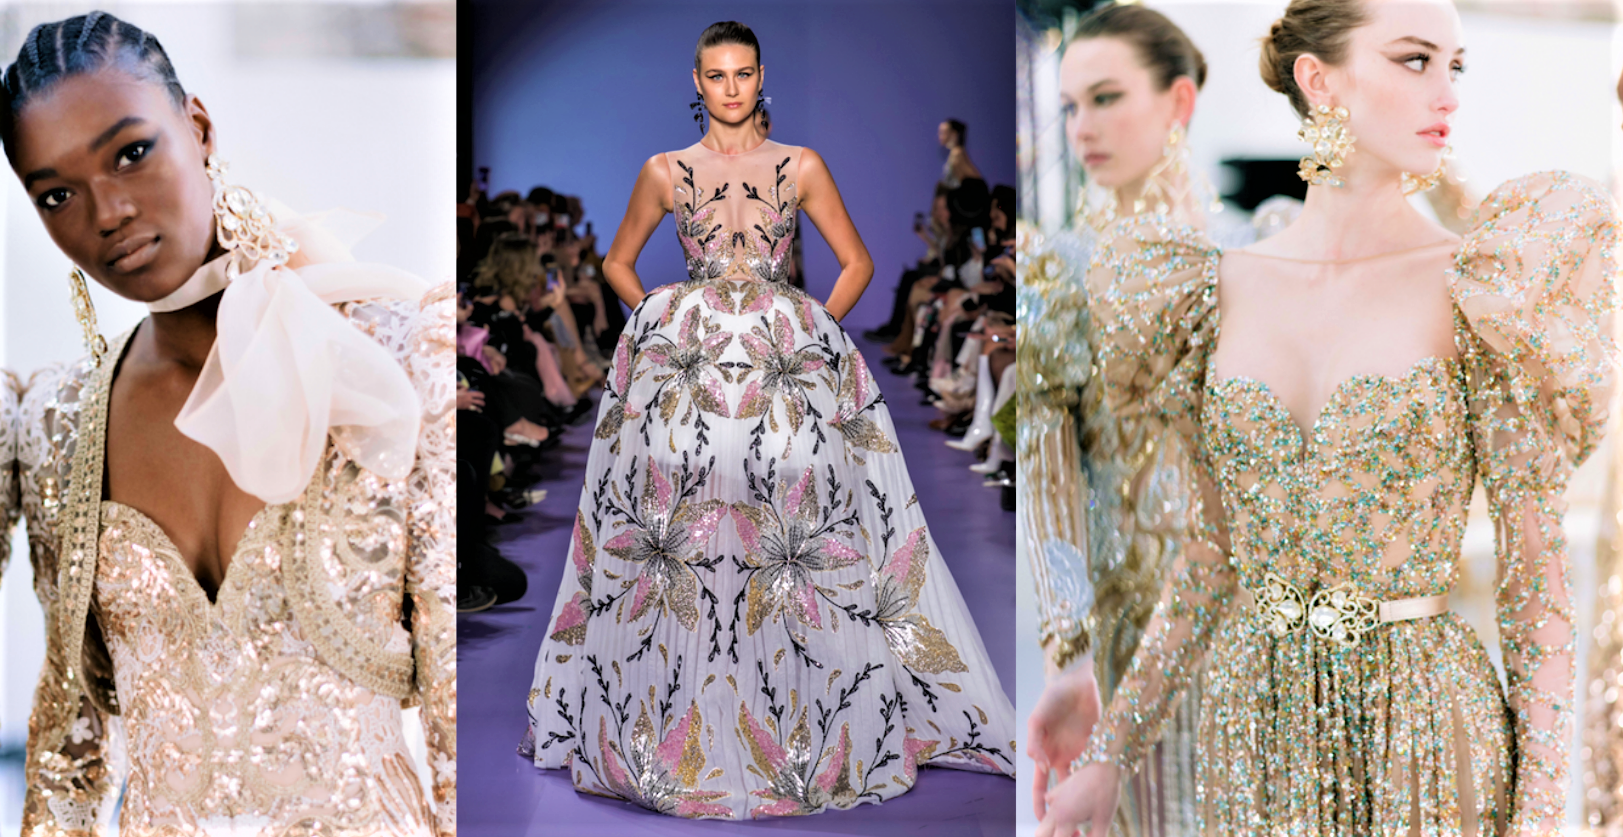 Haute couture 3 models horizontal image fall 21 cropped.png